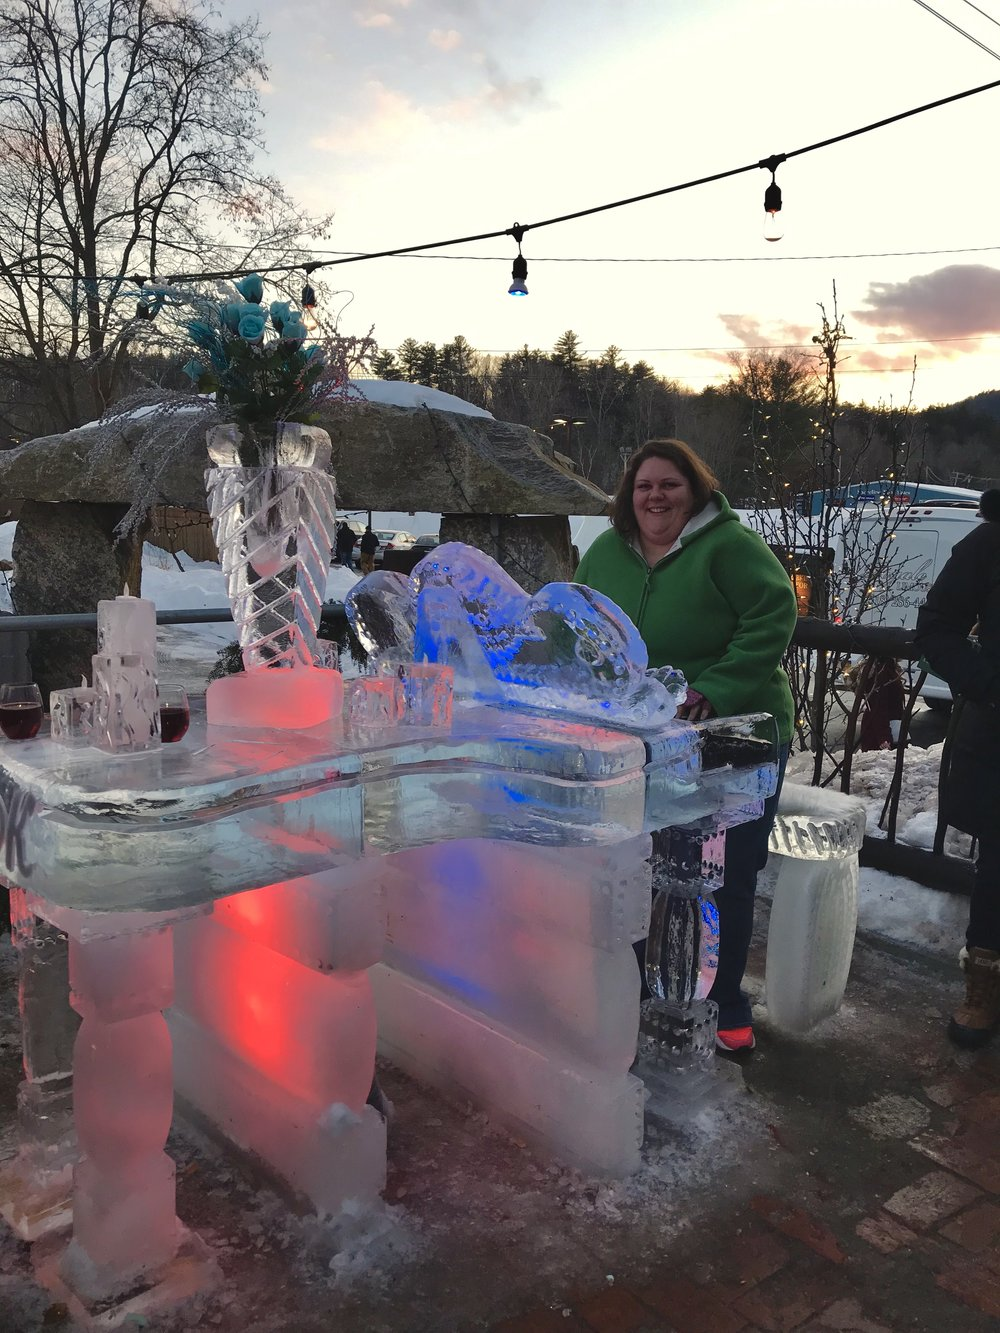 Playing the grand piano at Funky Ice Fest in Lake George, NY. c. January 2019